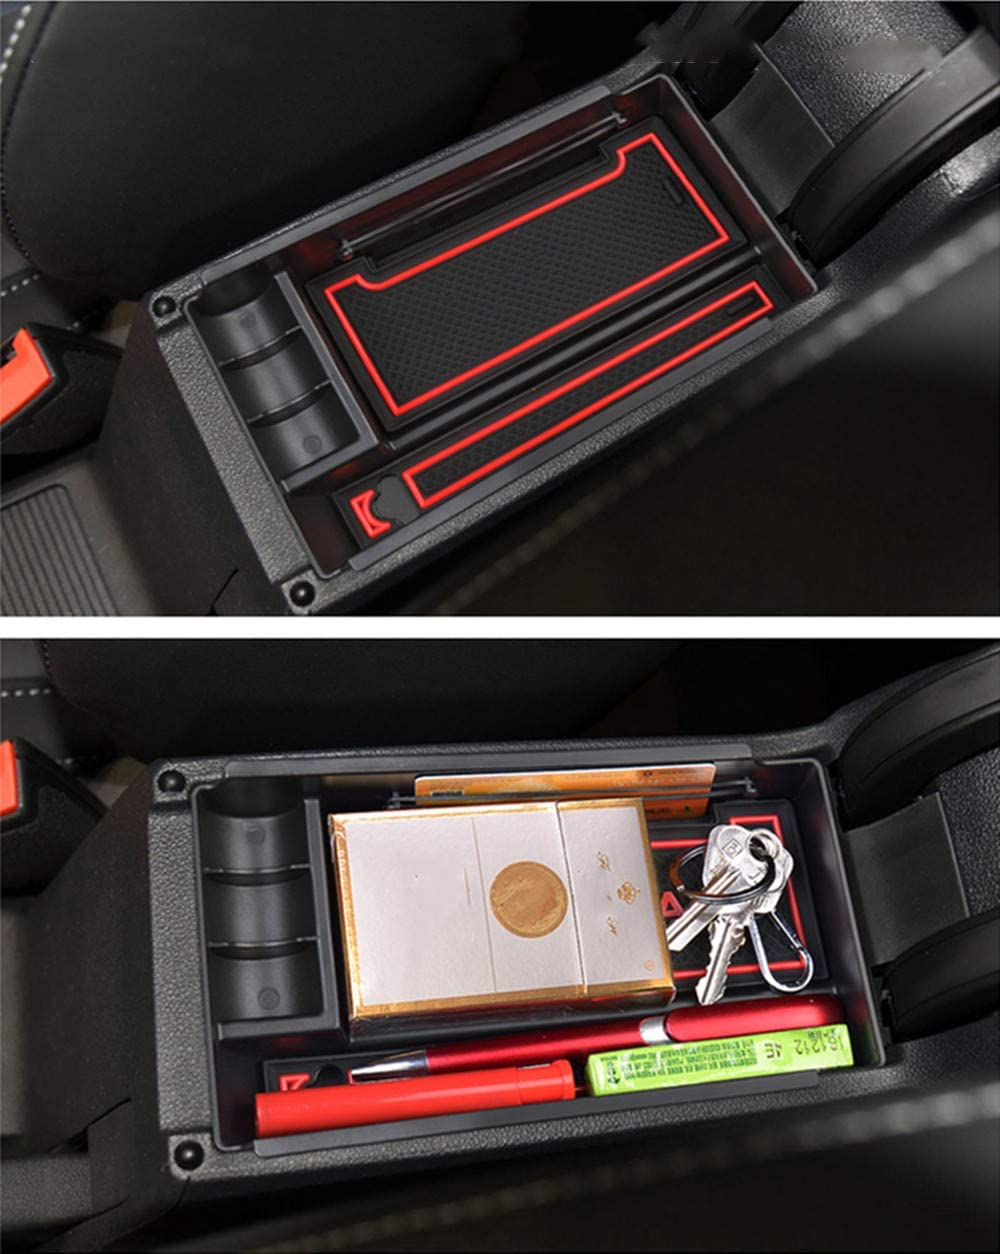 Secondary Storage Liner Accessories Custom Fit Cup Armrest Box for VW Teramont 2017 Center Console Organizer Insert ABS Black Materials Tray